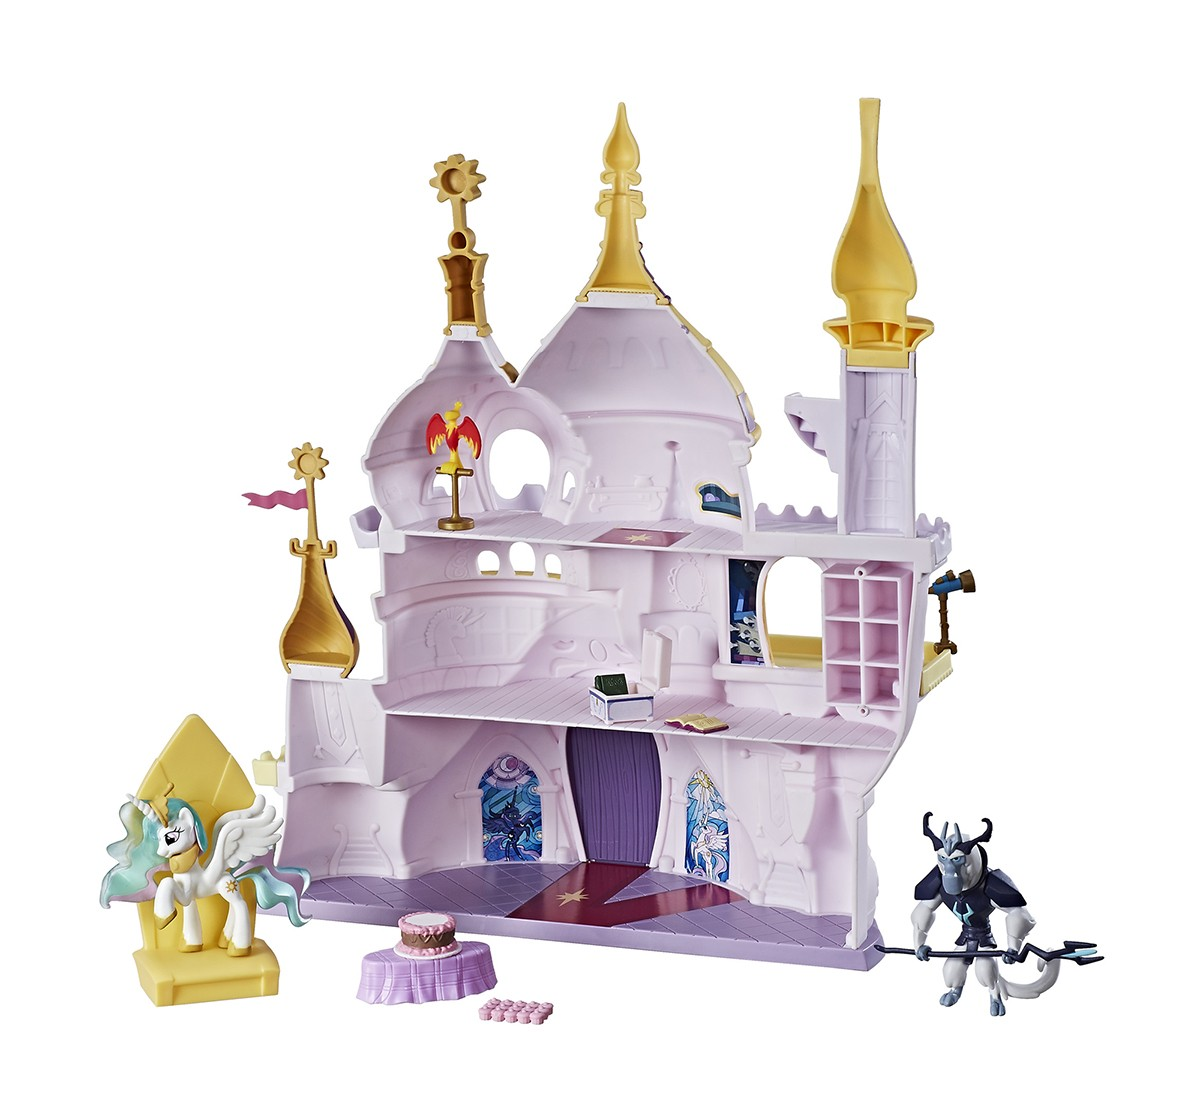 My Little Pony Friendship Is Magic Collection Canterlot Castle Playset Collectible Dolls for Girls age 3Y+